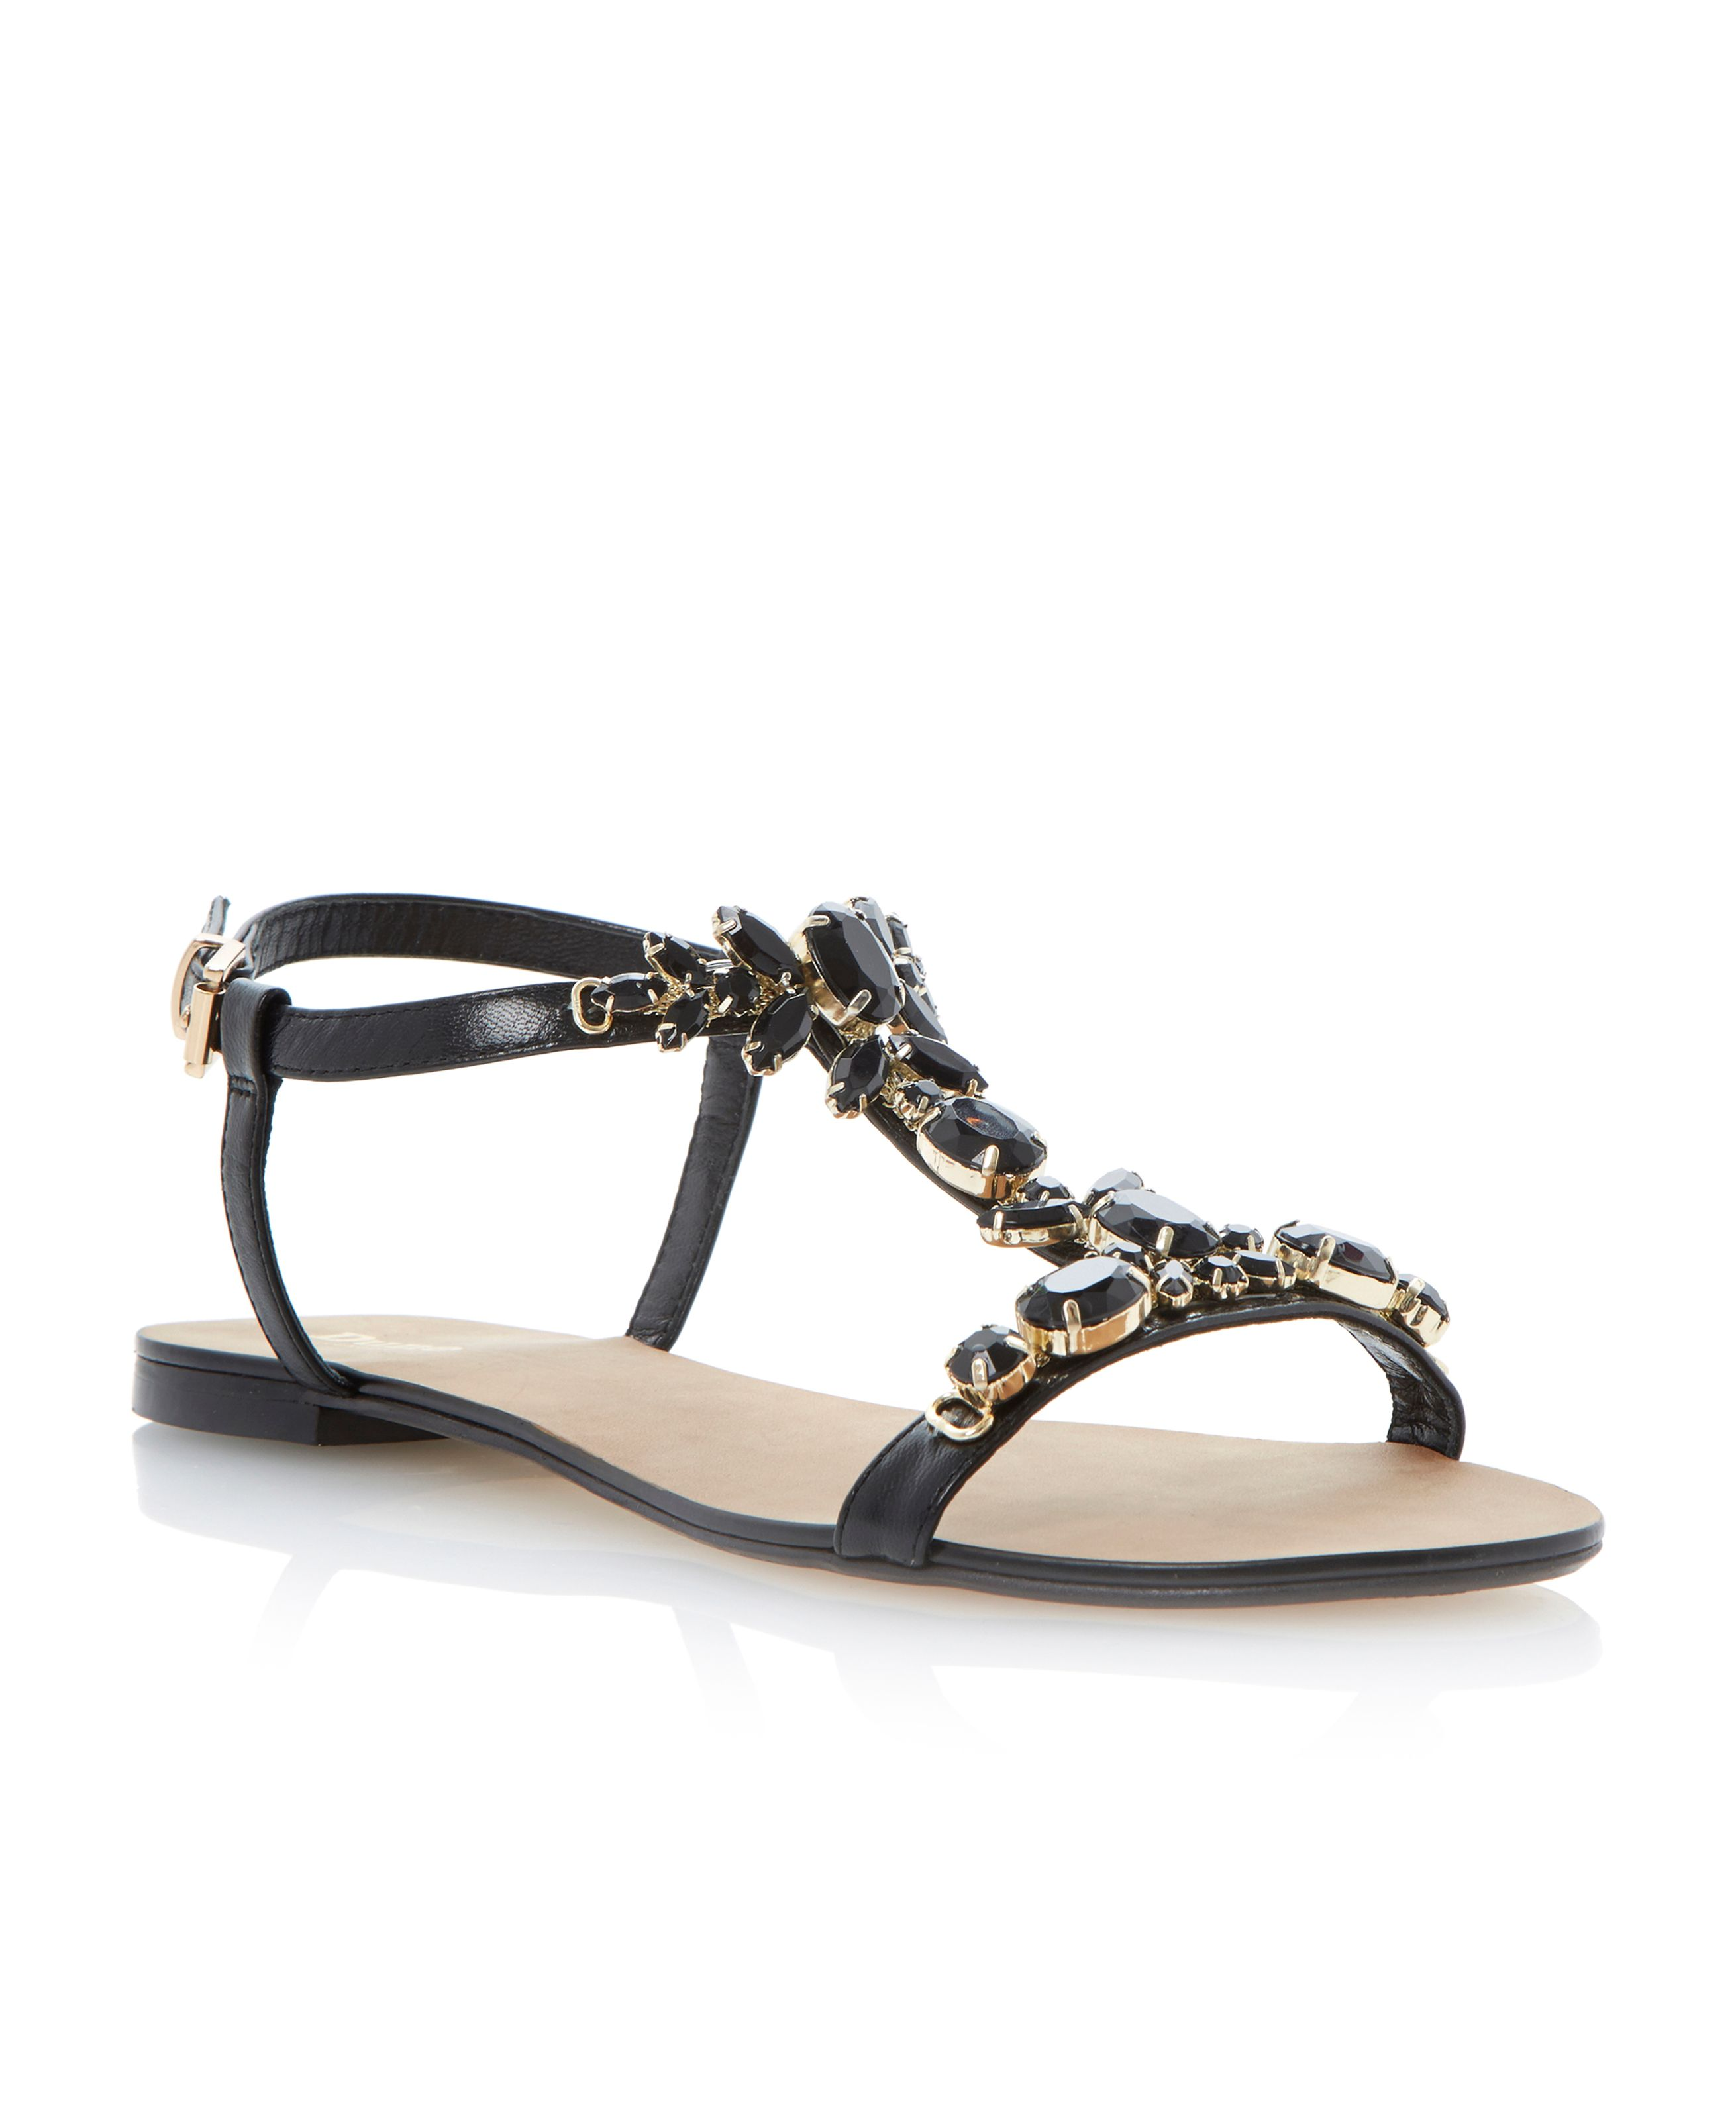 Khloe leather flat buckle dressy sandals